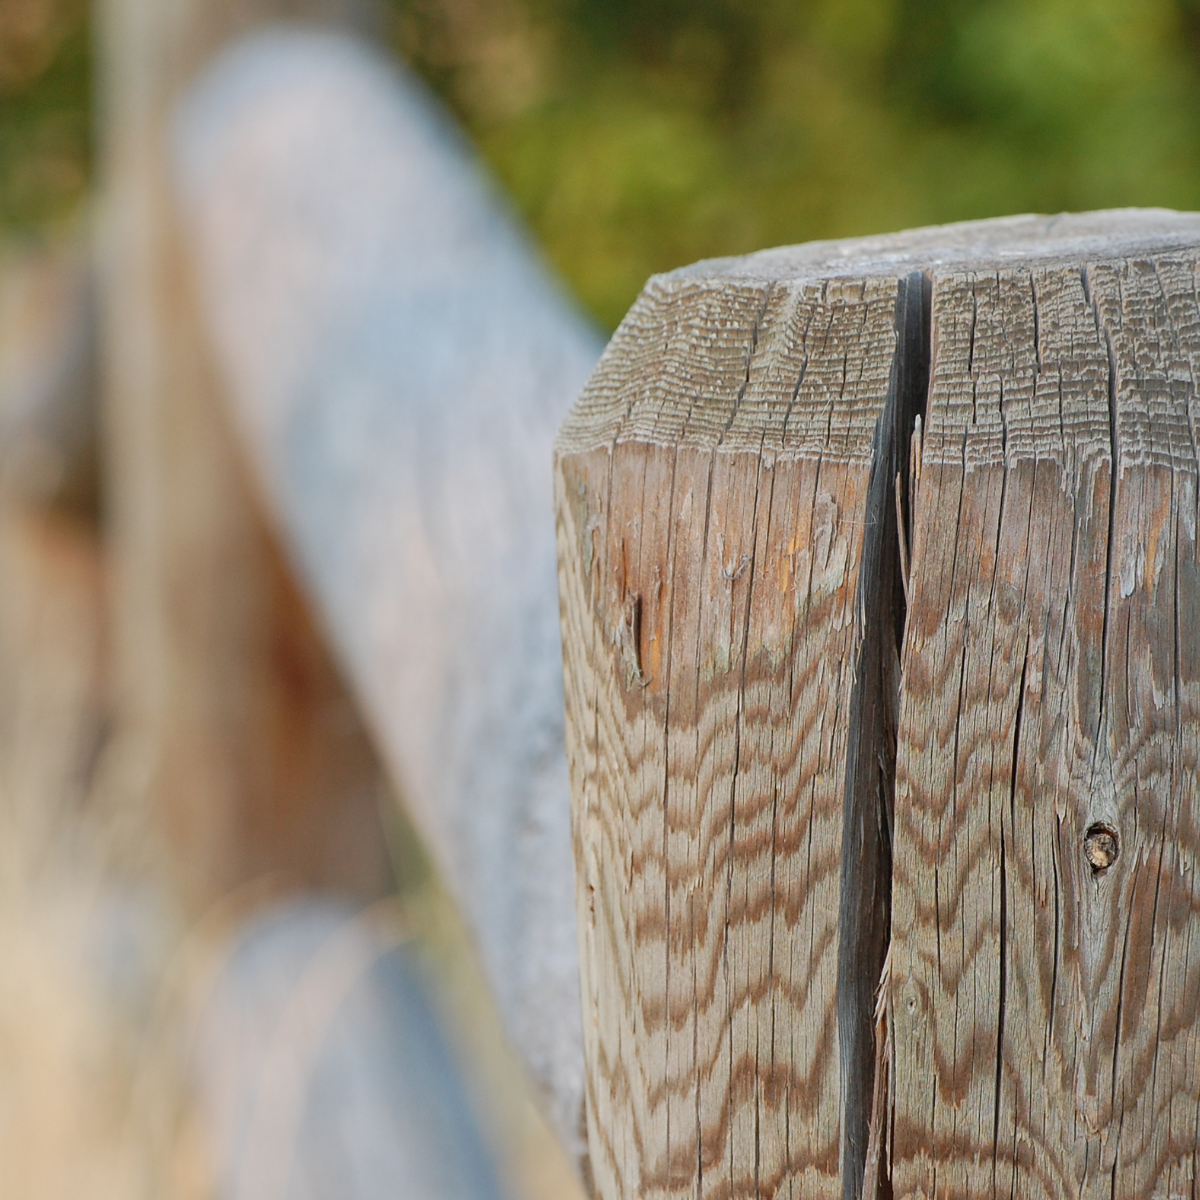 Round rail post and rail fence with check in the post